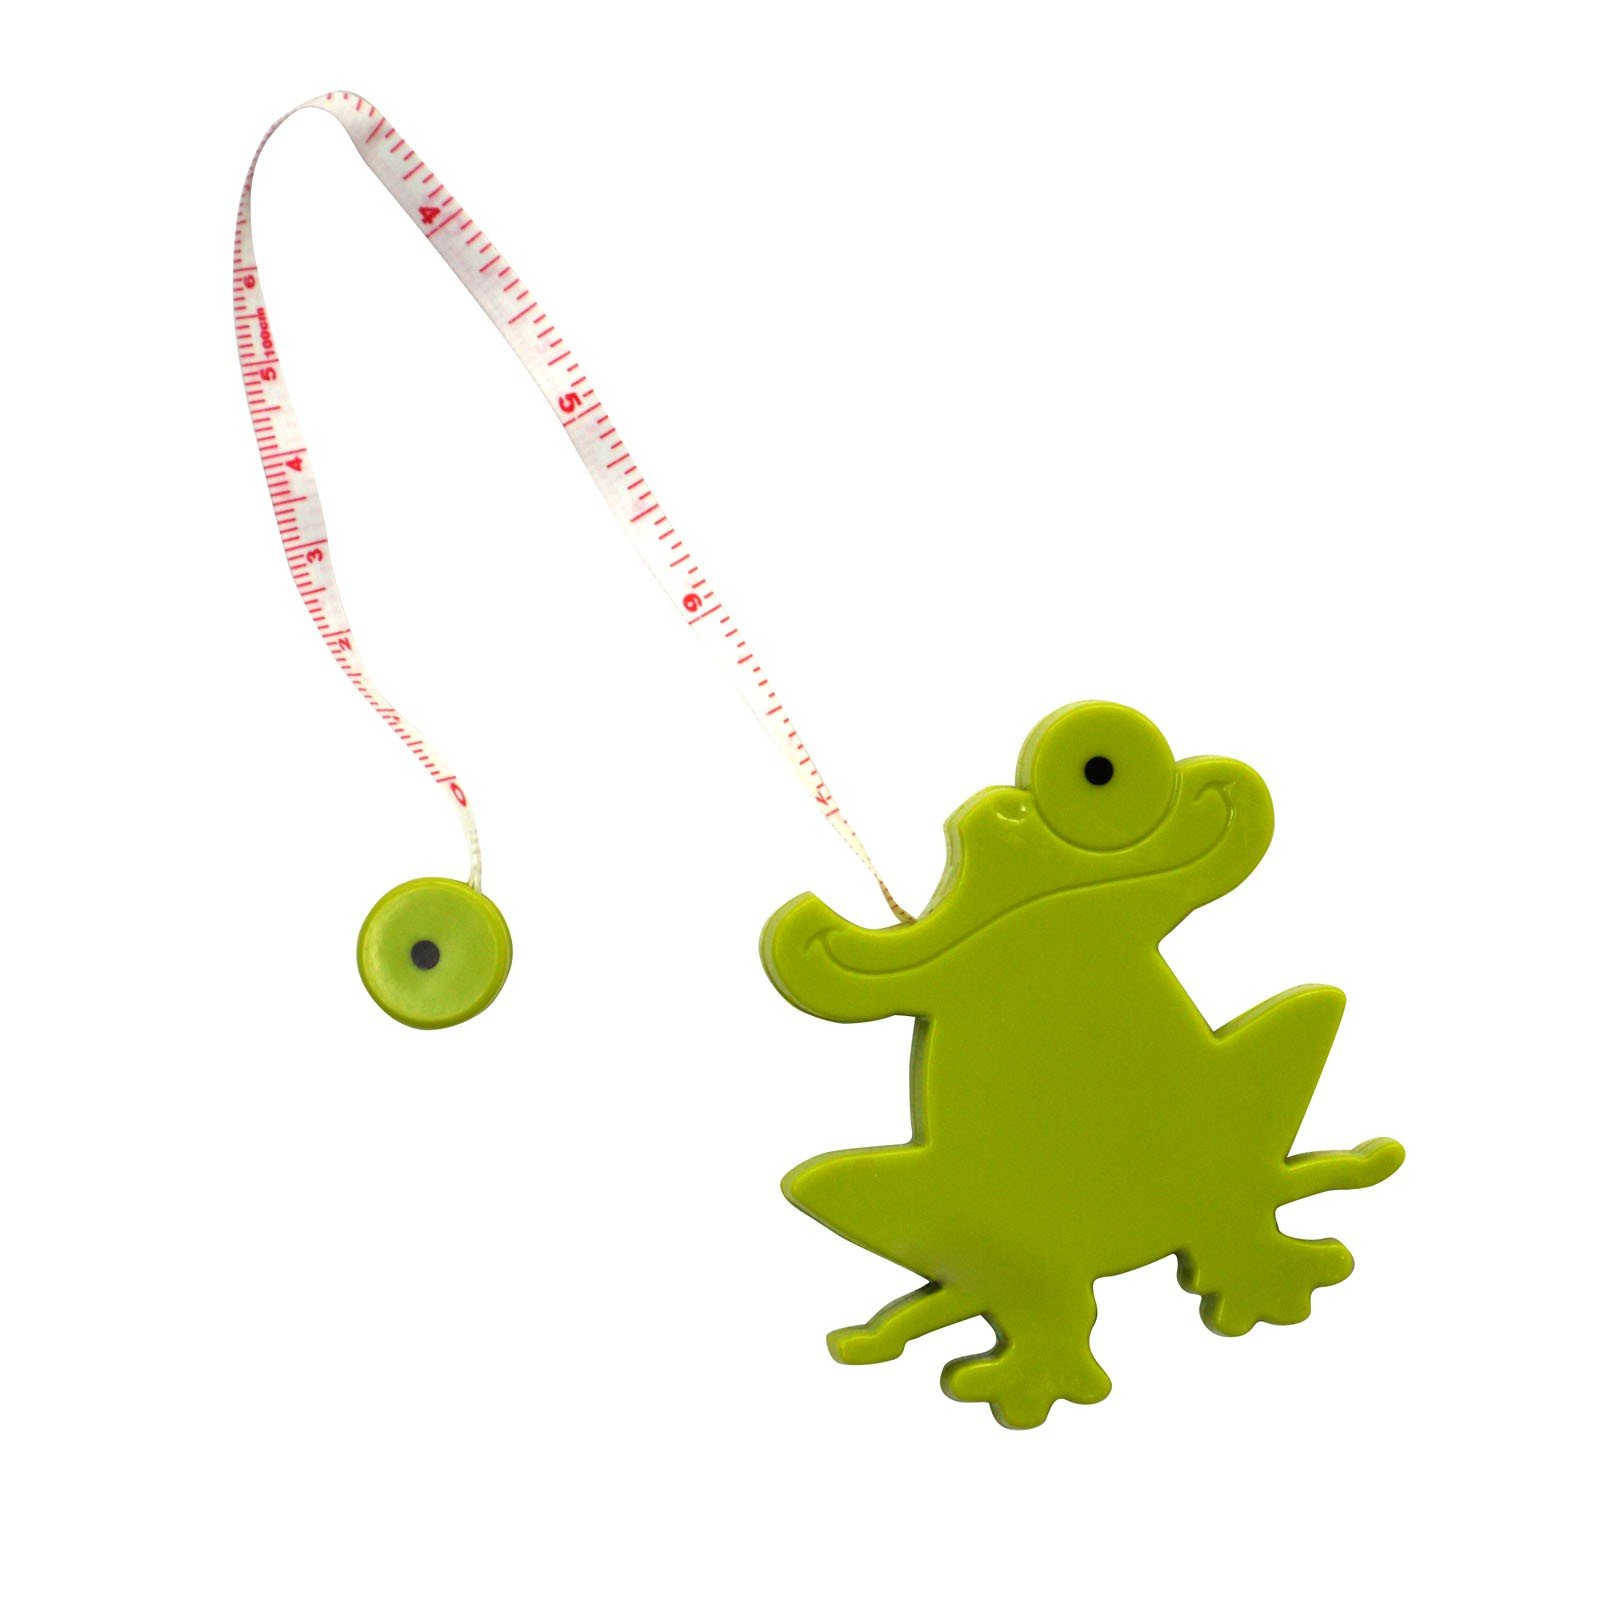 Jumpy Frog Tape Measure